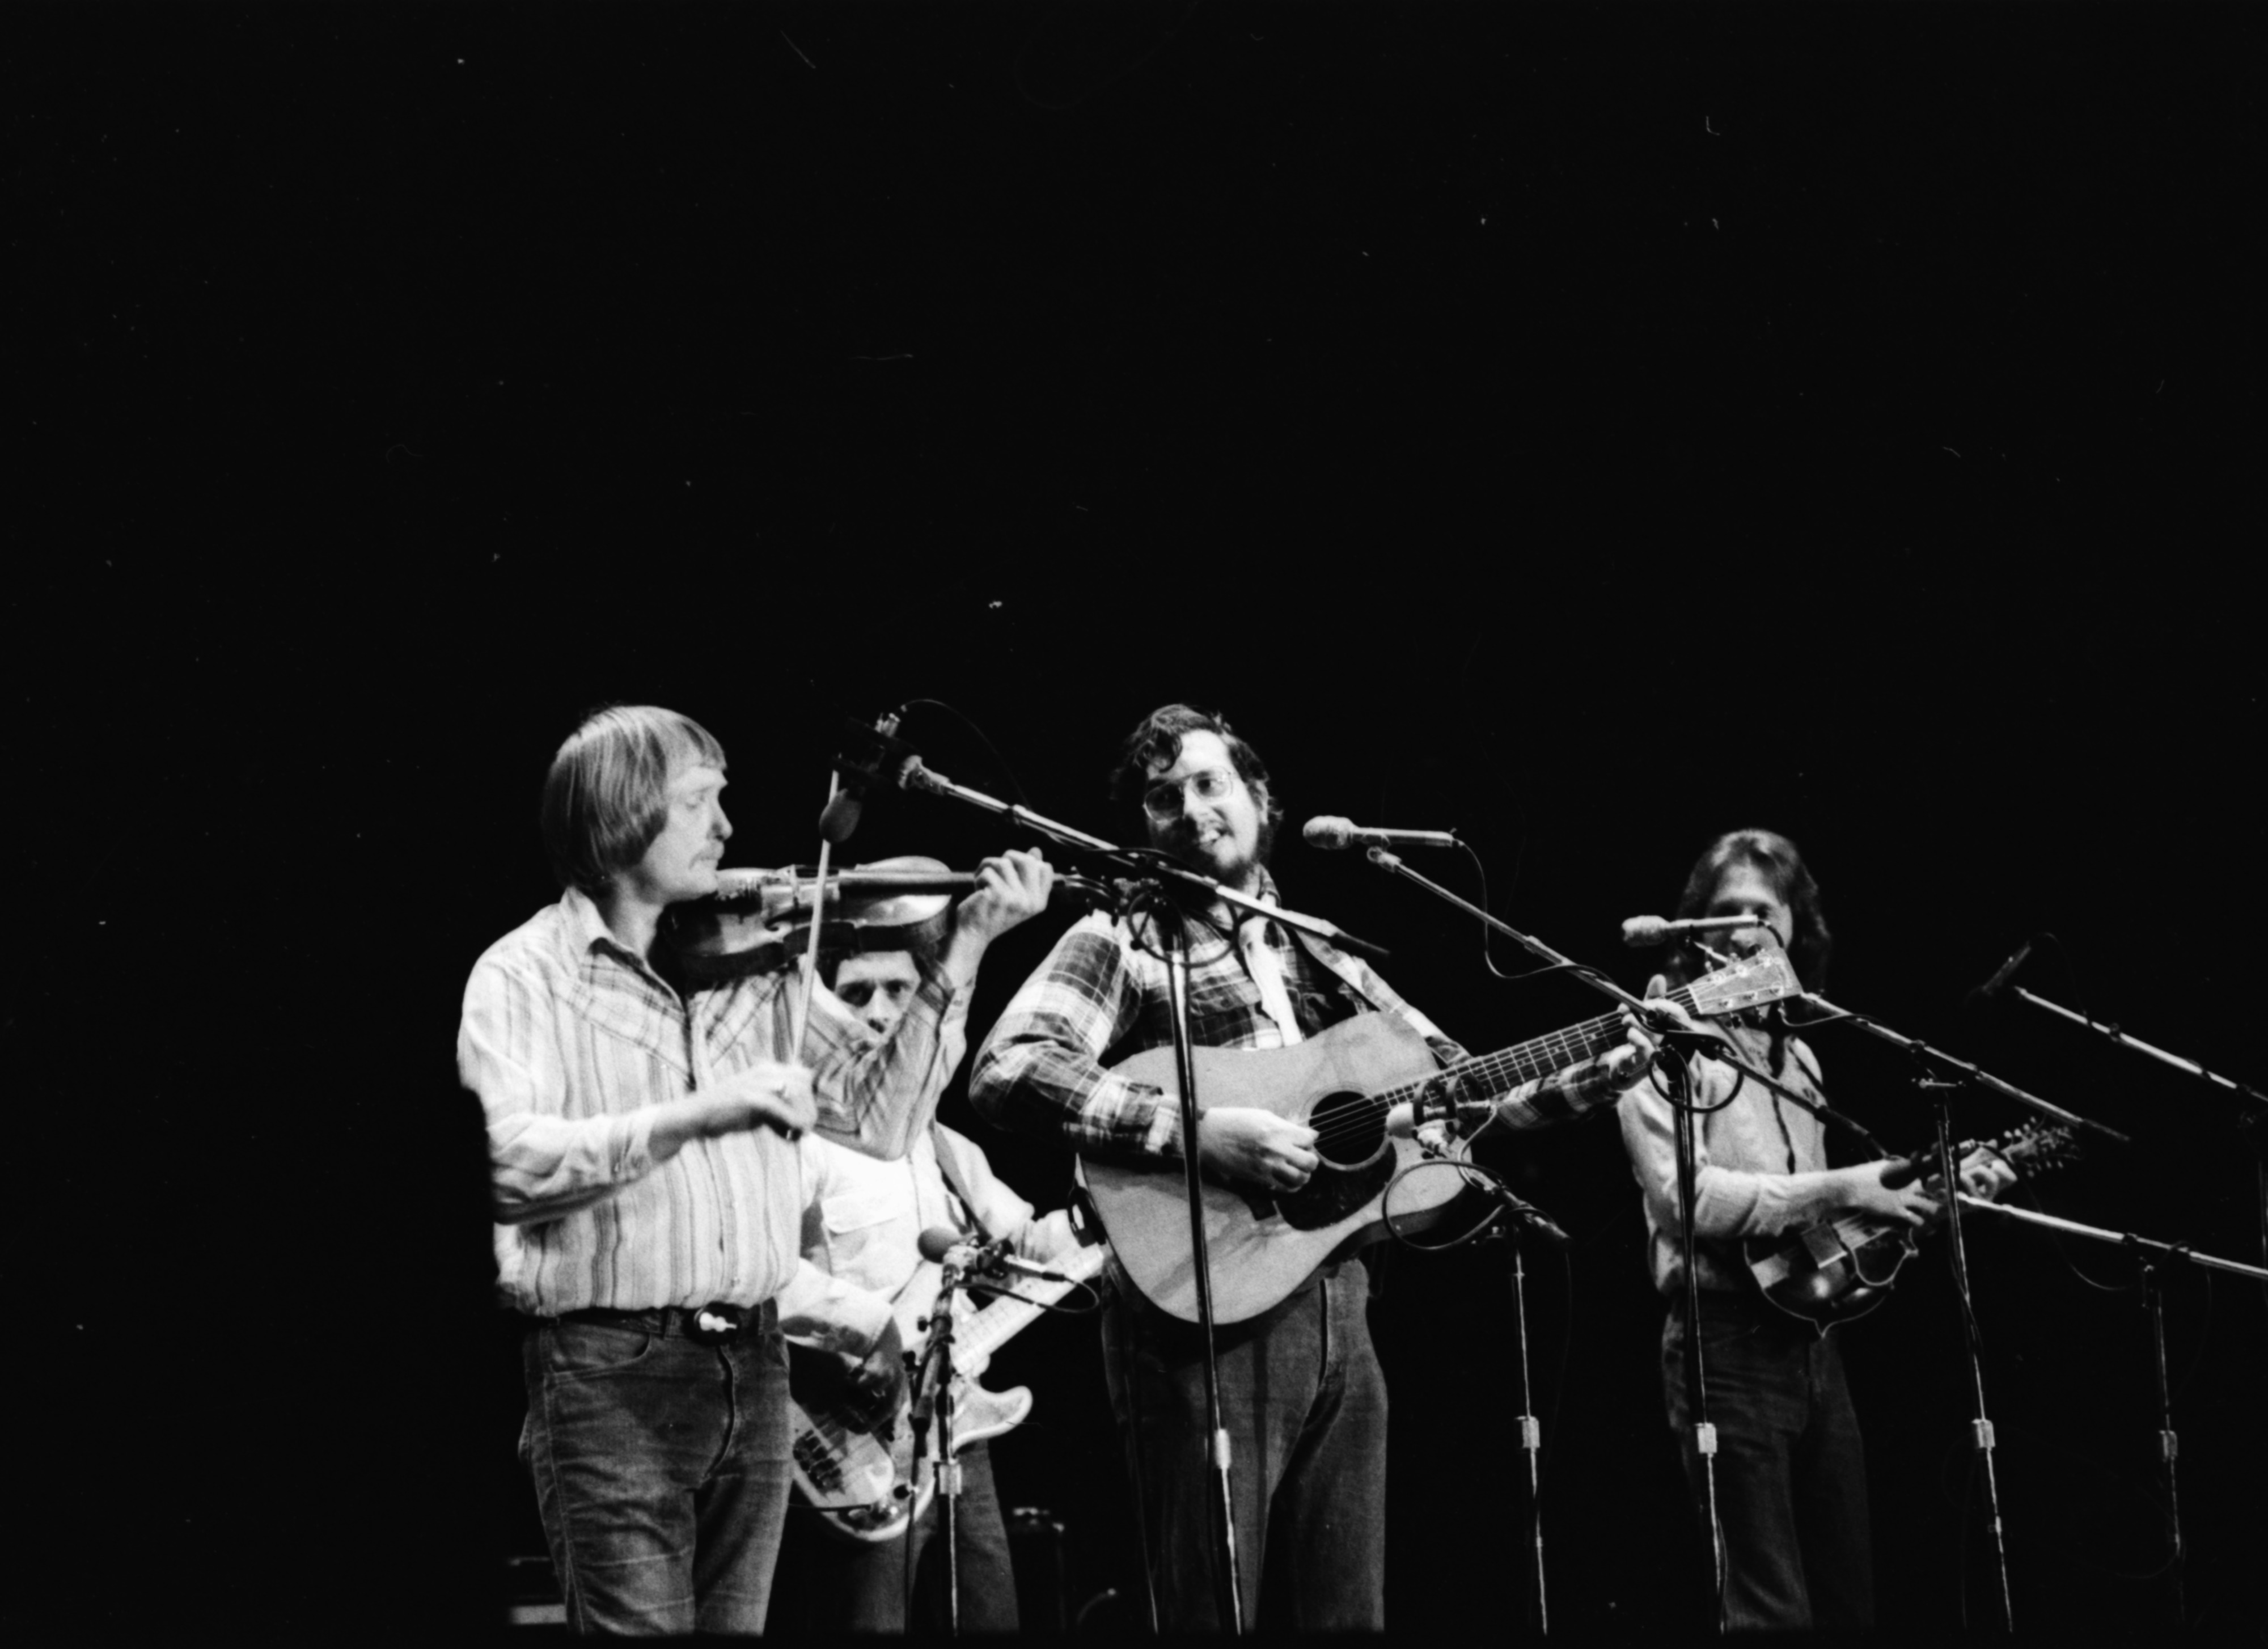 David Bromberg, Ann Arbor Folk Festival, January 1984 image